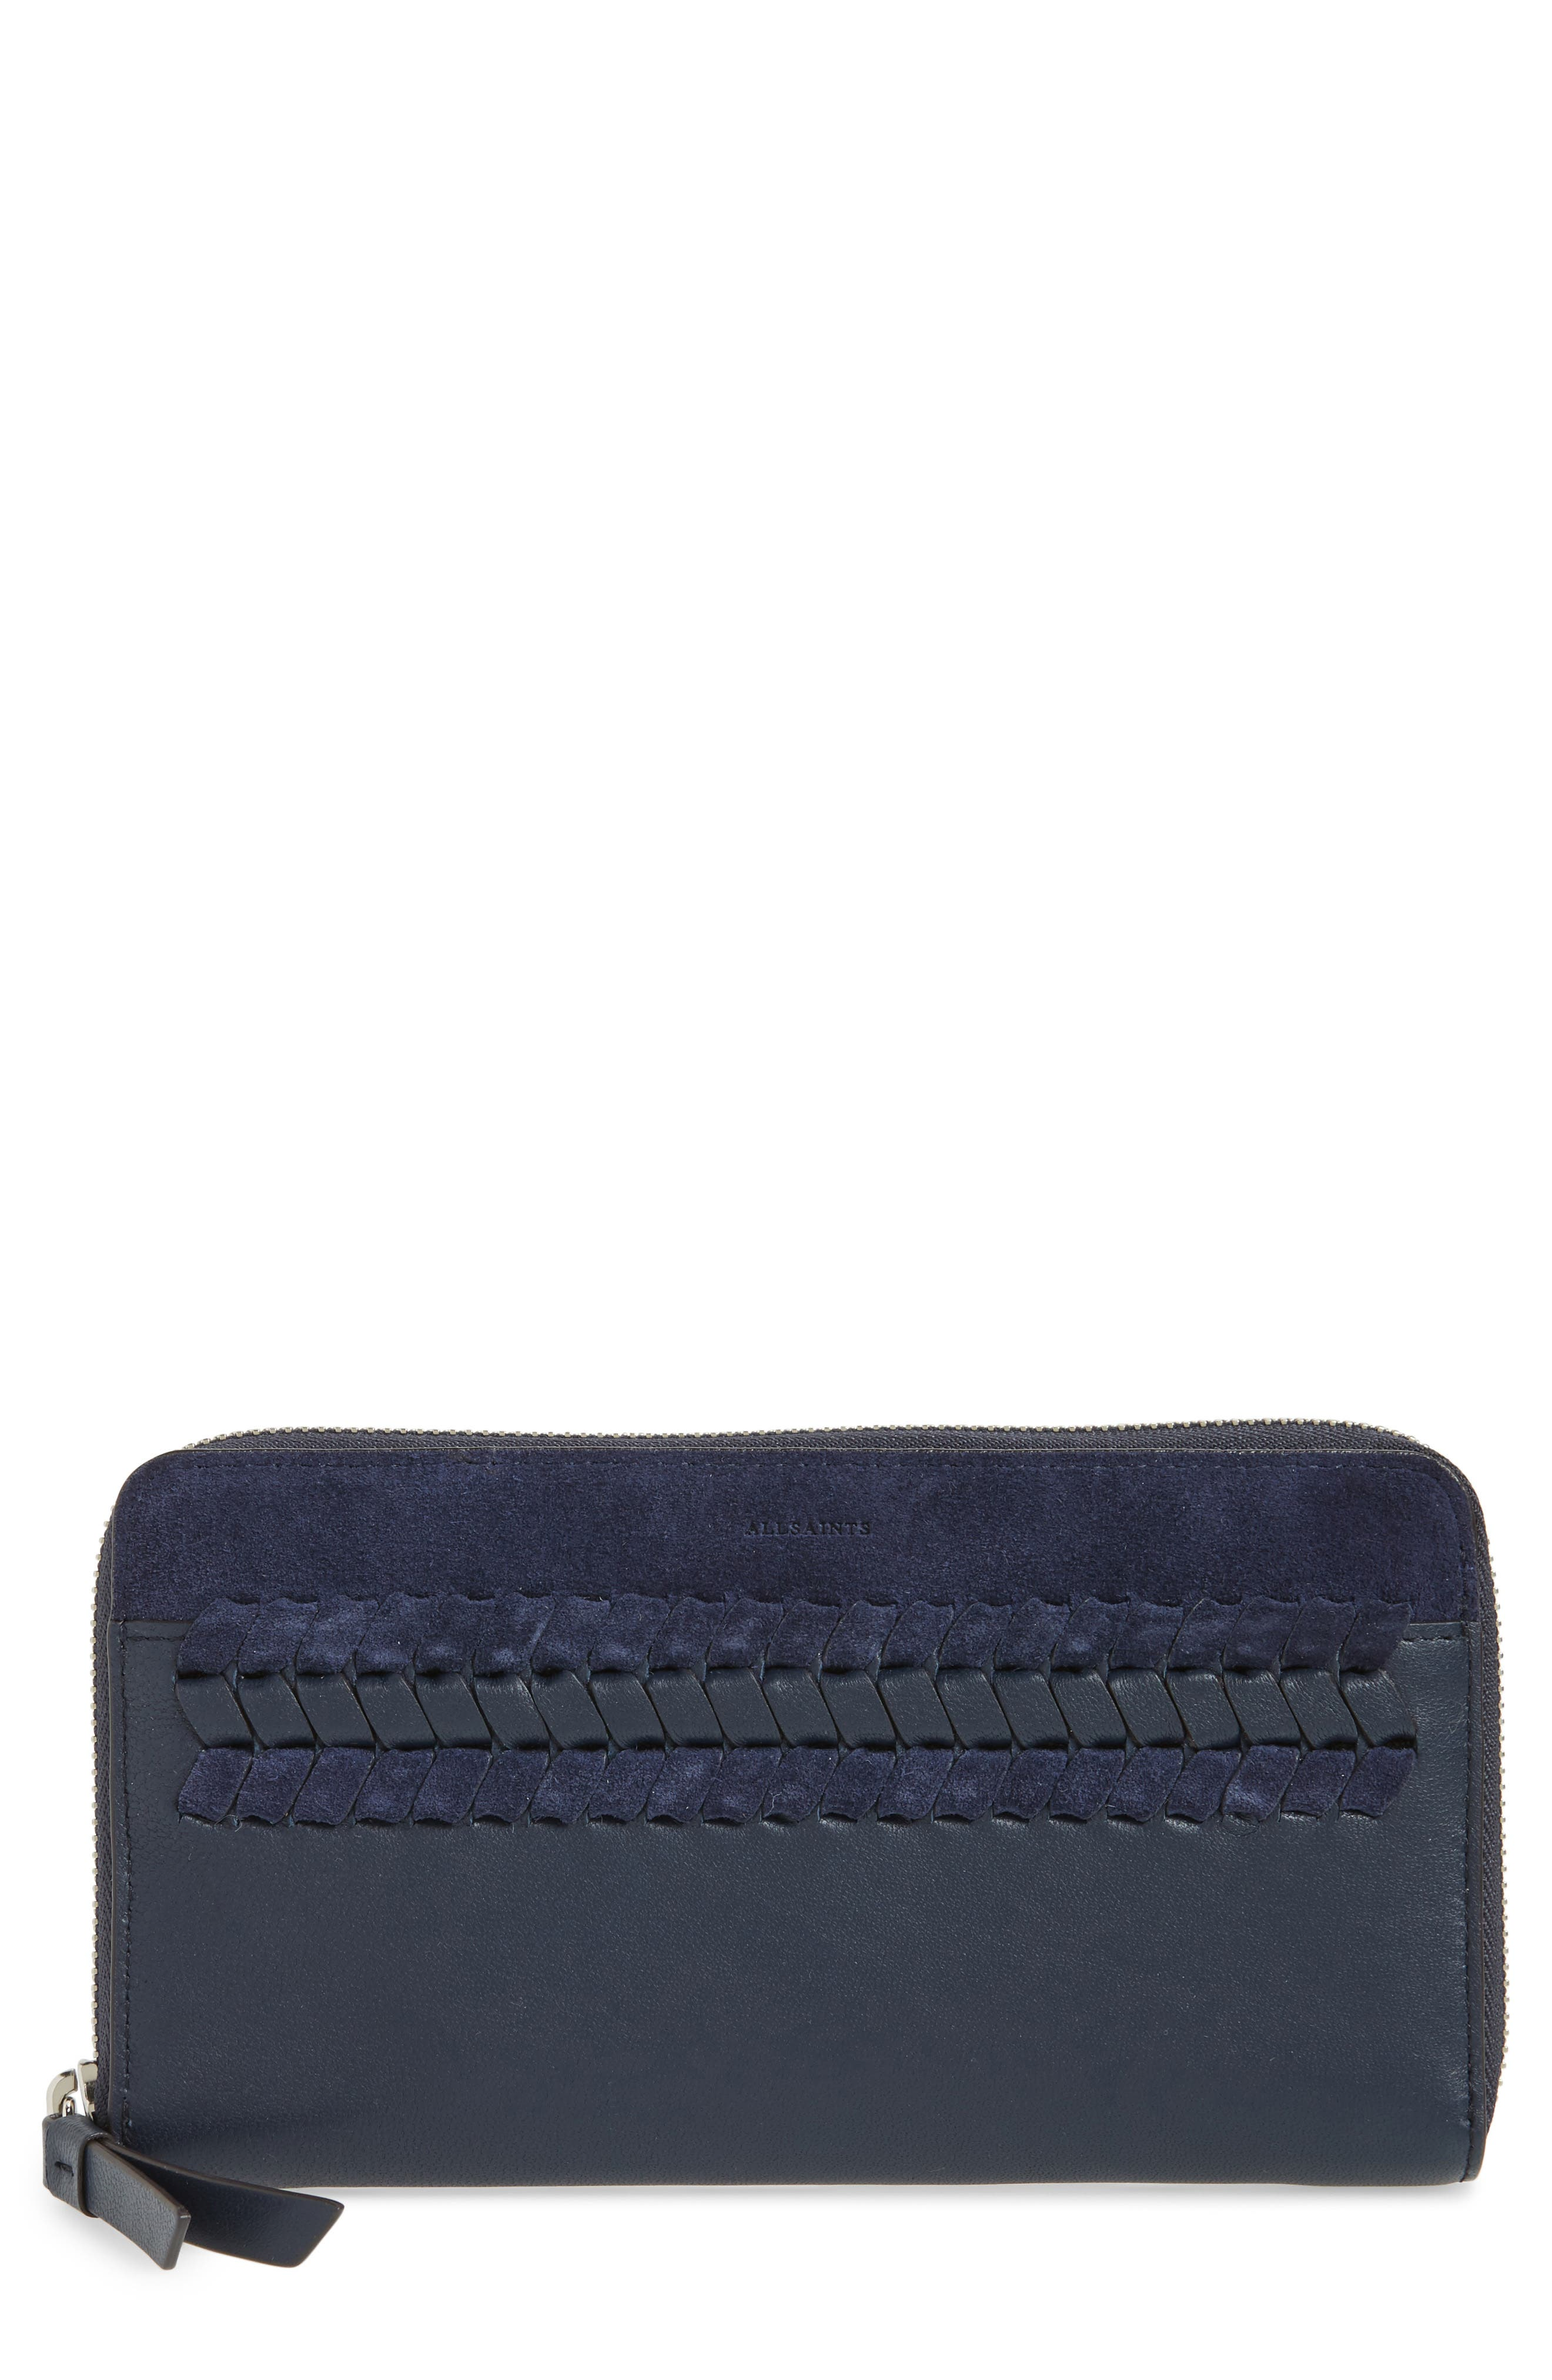 Main Image - ALLSAINTS Ray Whip Leather & Suede Wallet